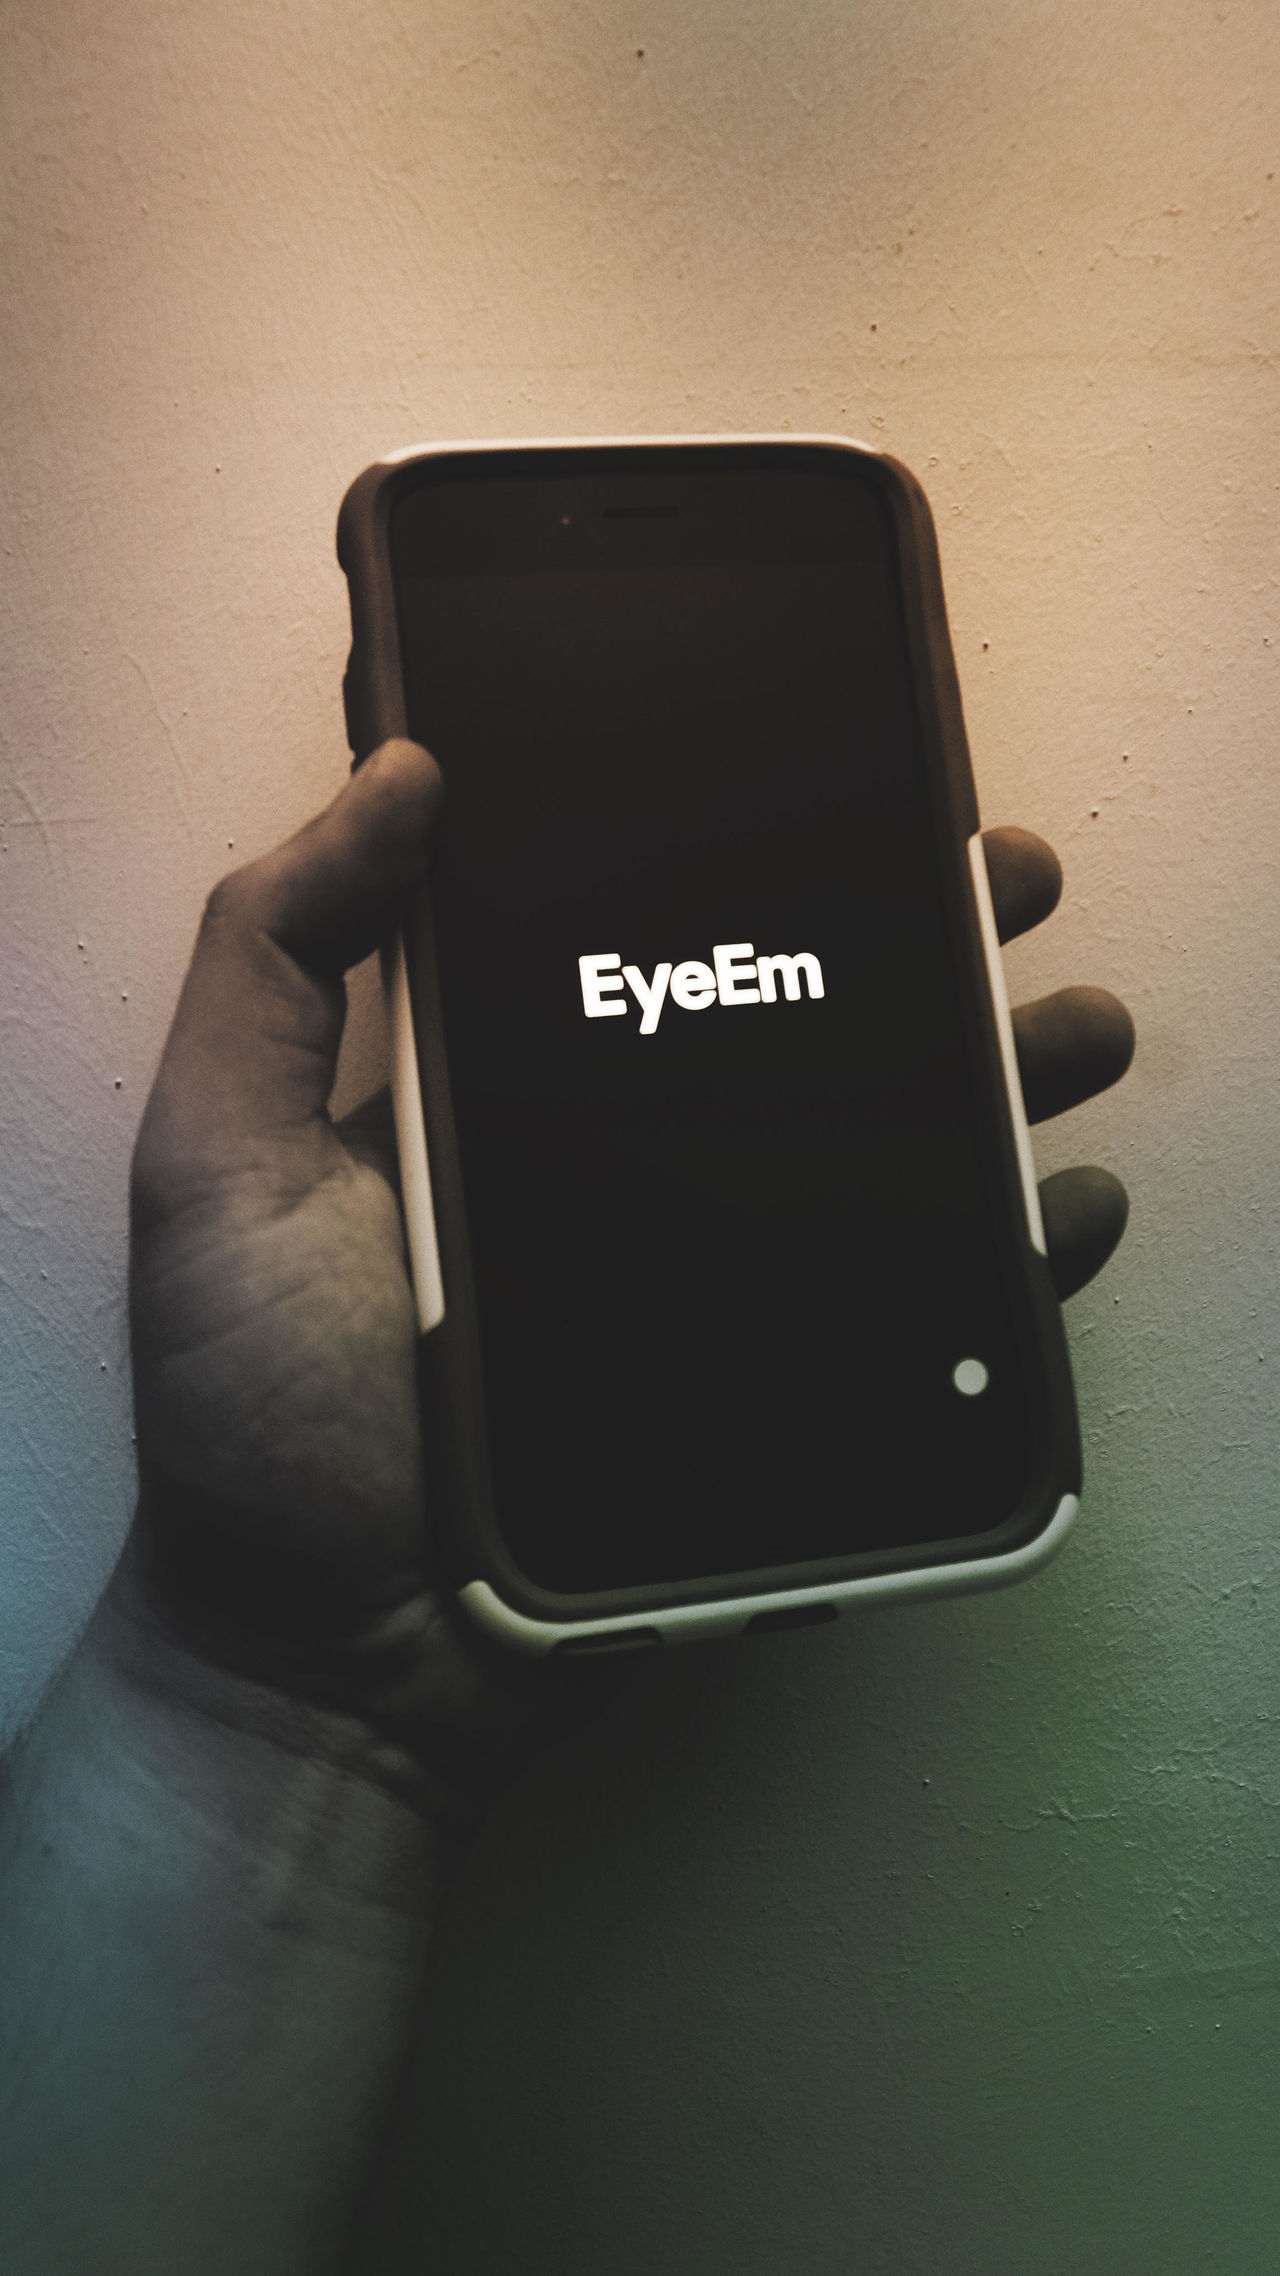 Humans meets technology - everything is at the tip of your finger. Close-up Day EyeEm EyeEm Best Shots Eyeem Collection Faded Fresh On Eyeem  Hand Human Humans Meets Technology IPhone Iphone 6 Plus IPhoneography Modern Modern Wonders No People Showing Imperfection Smartphone Smartphonephotography Story Telling Technology The Week Of Eyeem Wireless Technology